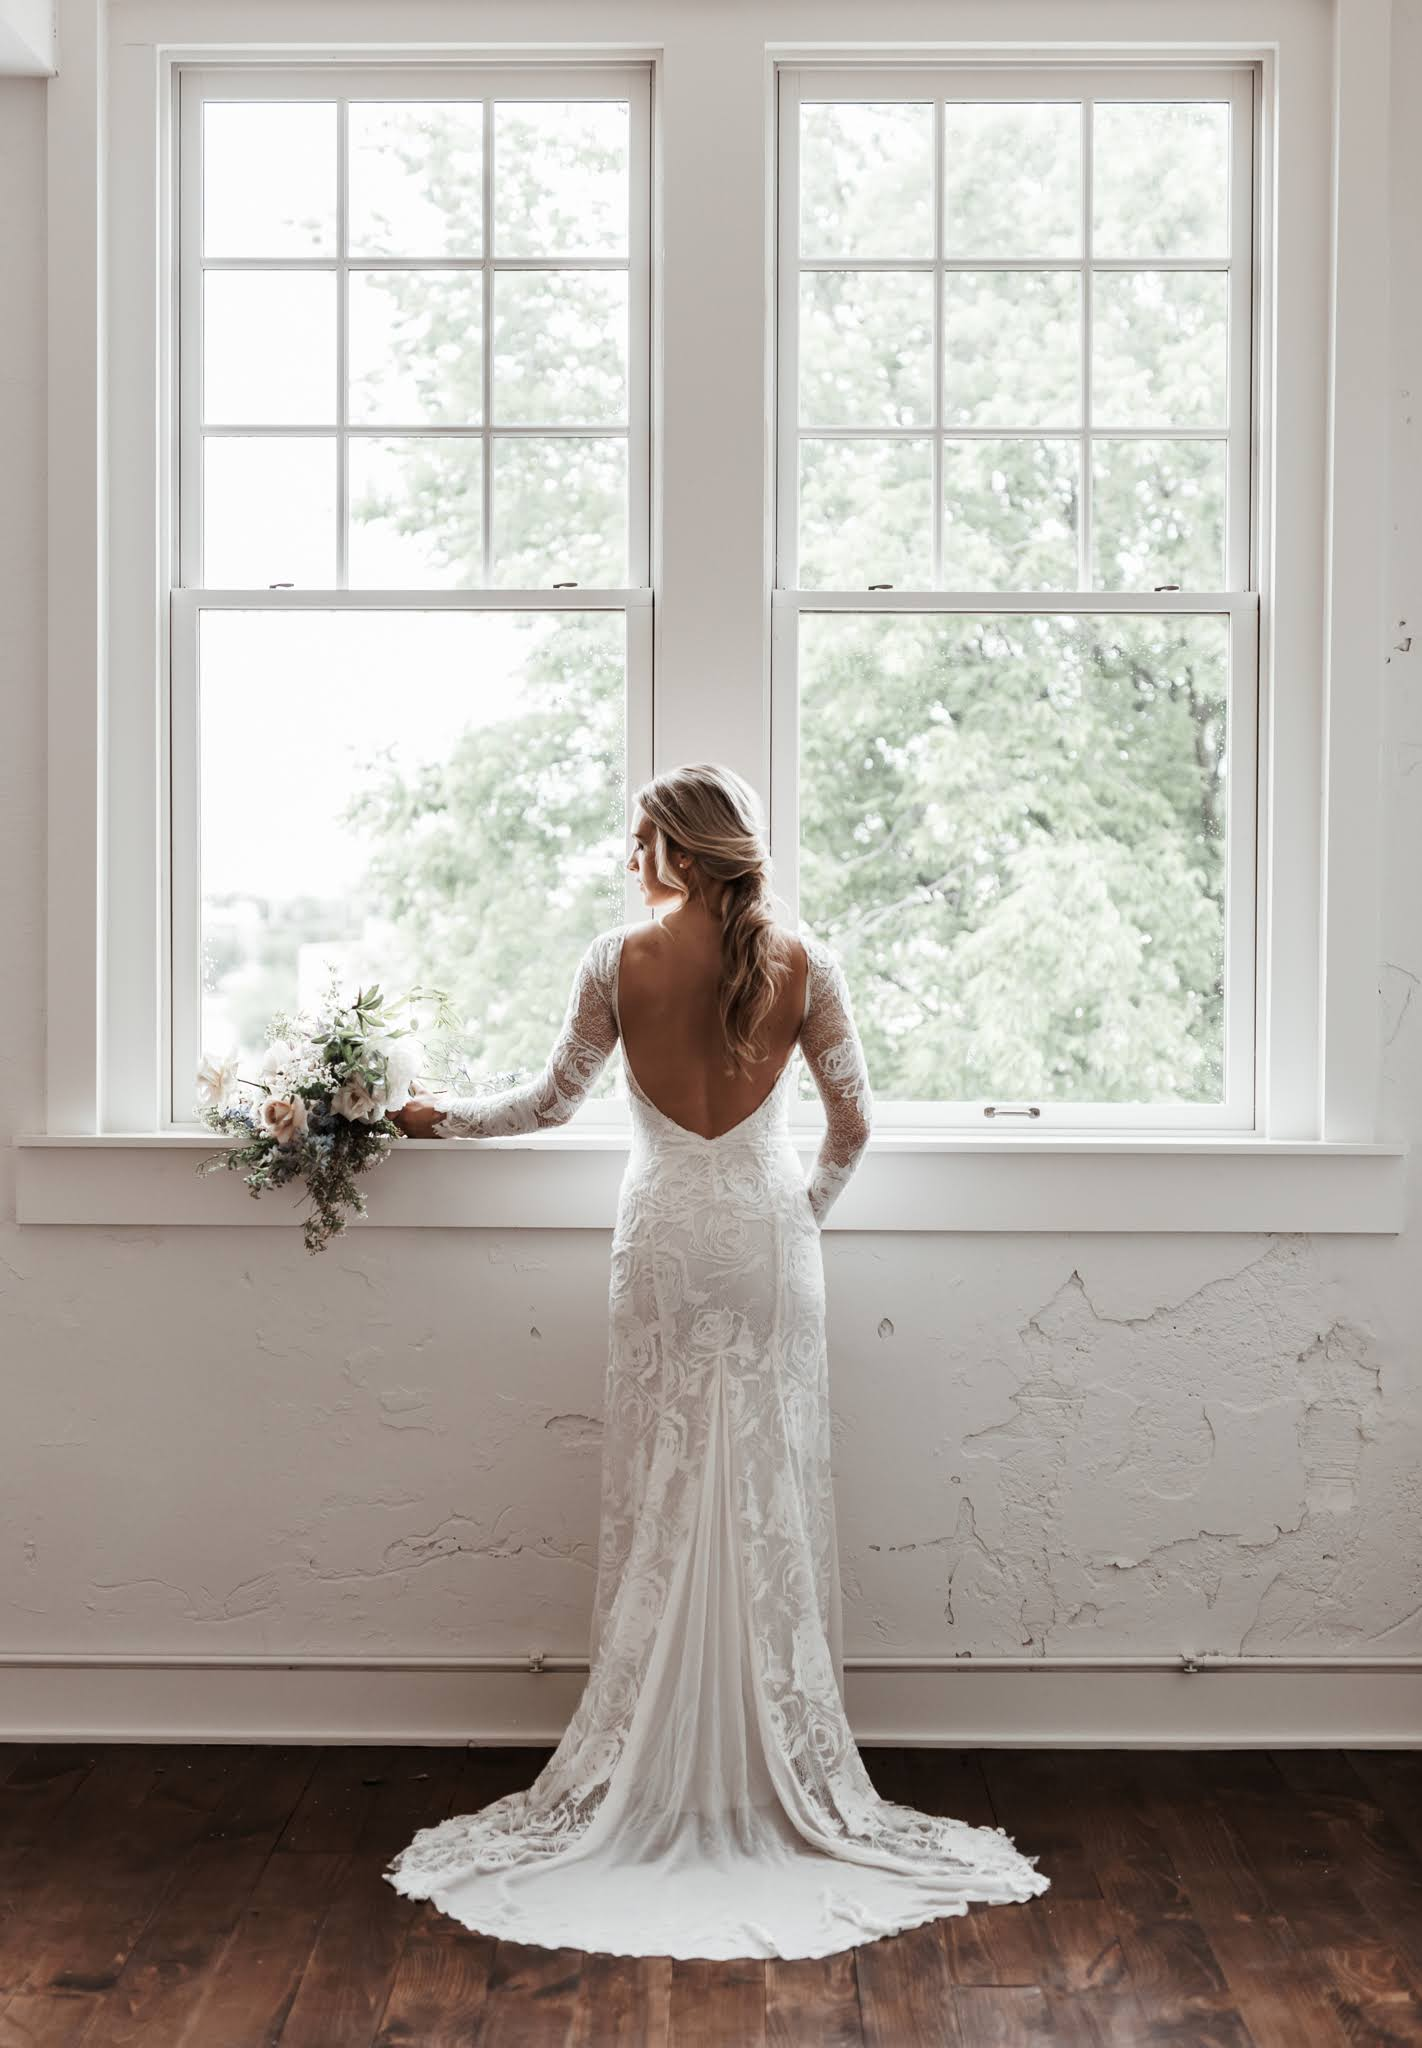 Everything You Need to Know About Wedding Gowns - originally published on ivoryandink.com